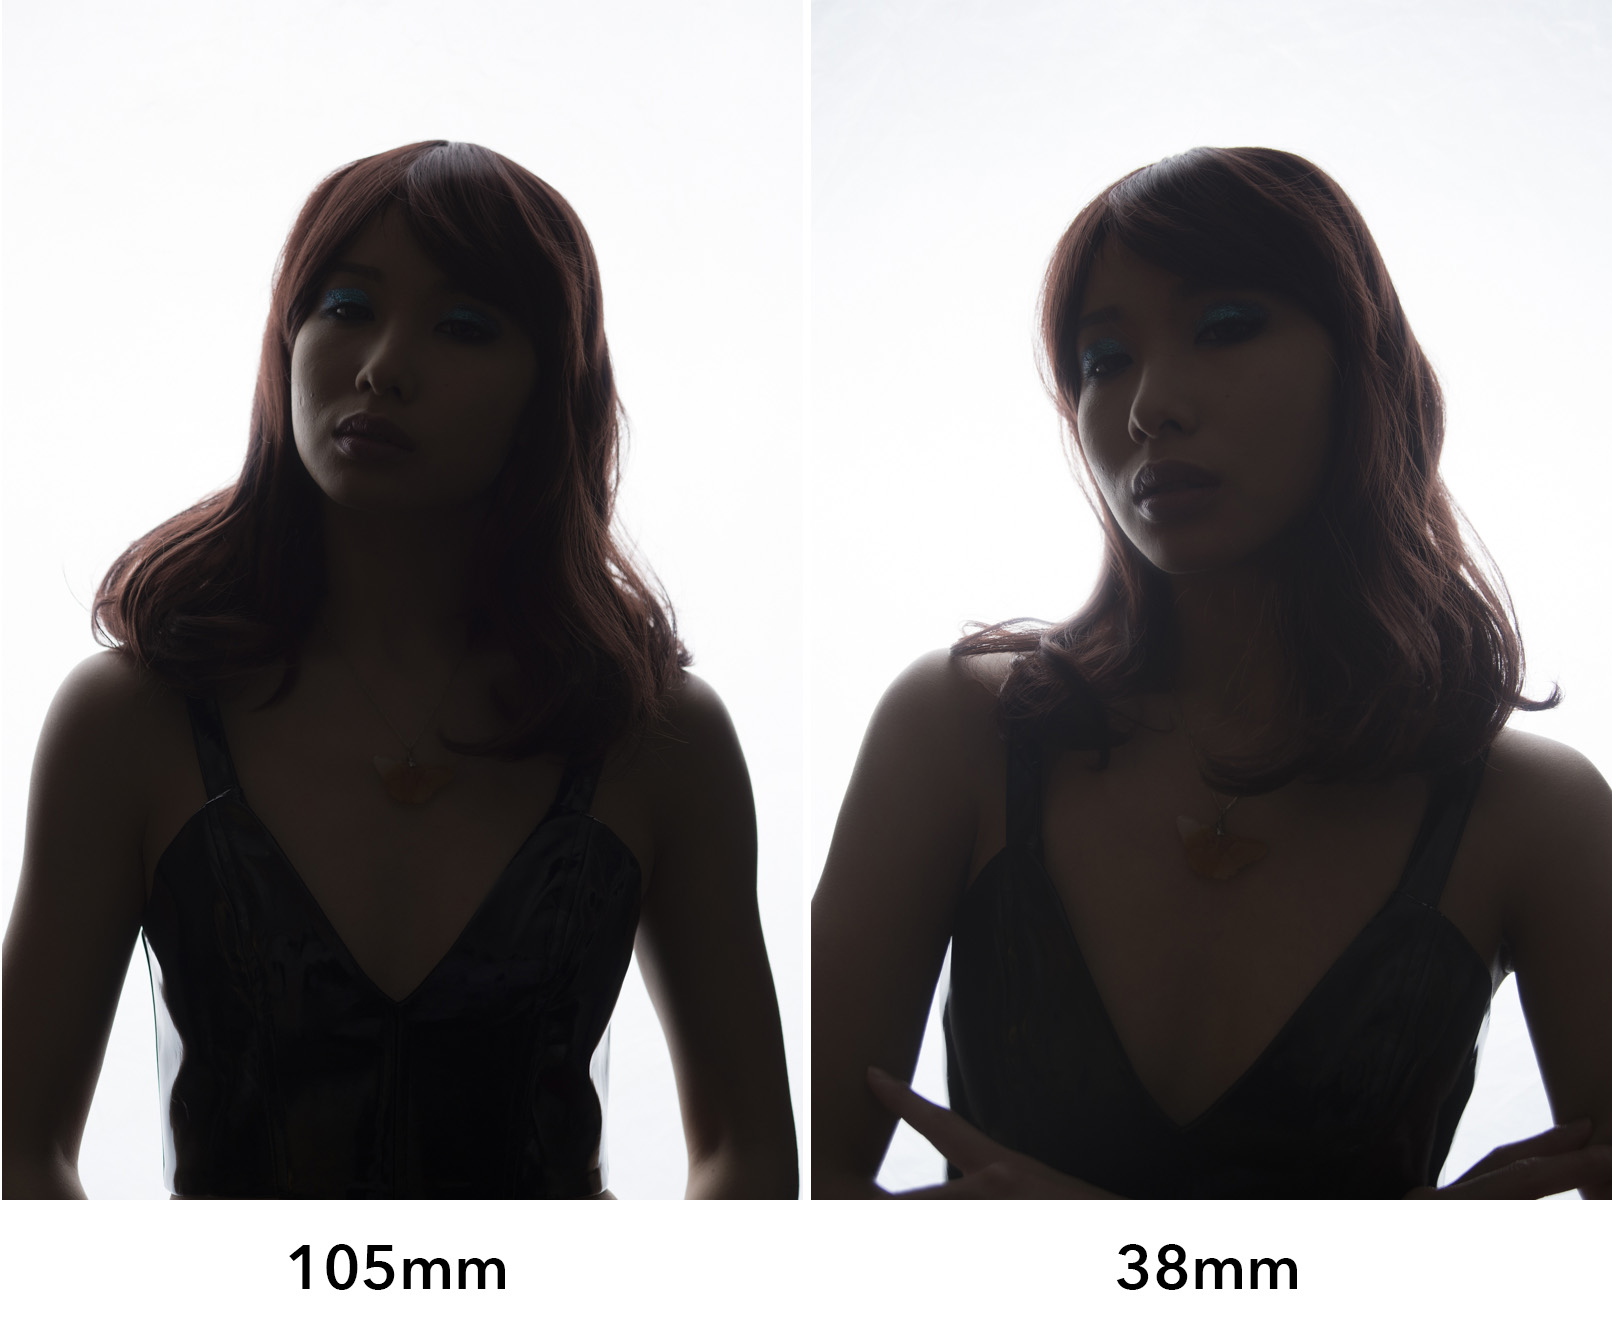 I have clearly used two extreme focal lengths here to illustrate my point but it should be clear to see just how much flare is present in the wider 38mm shot compared to the 105mm.